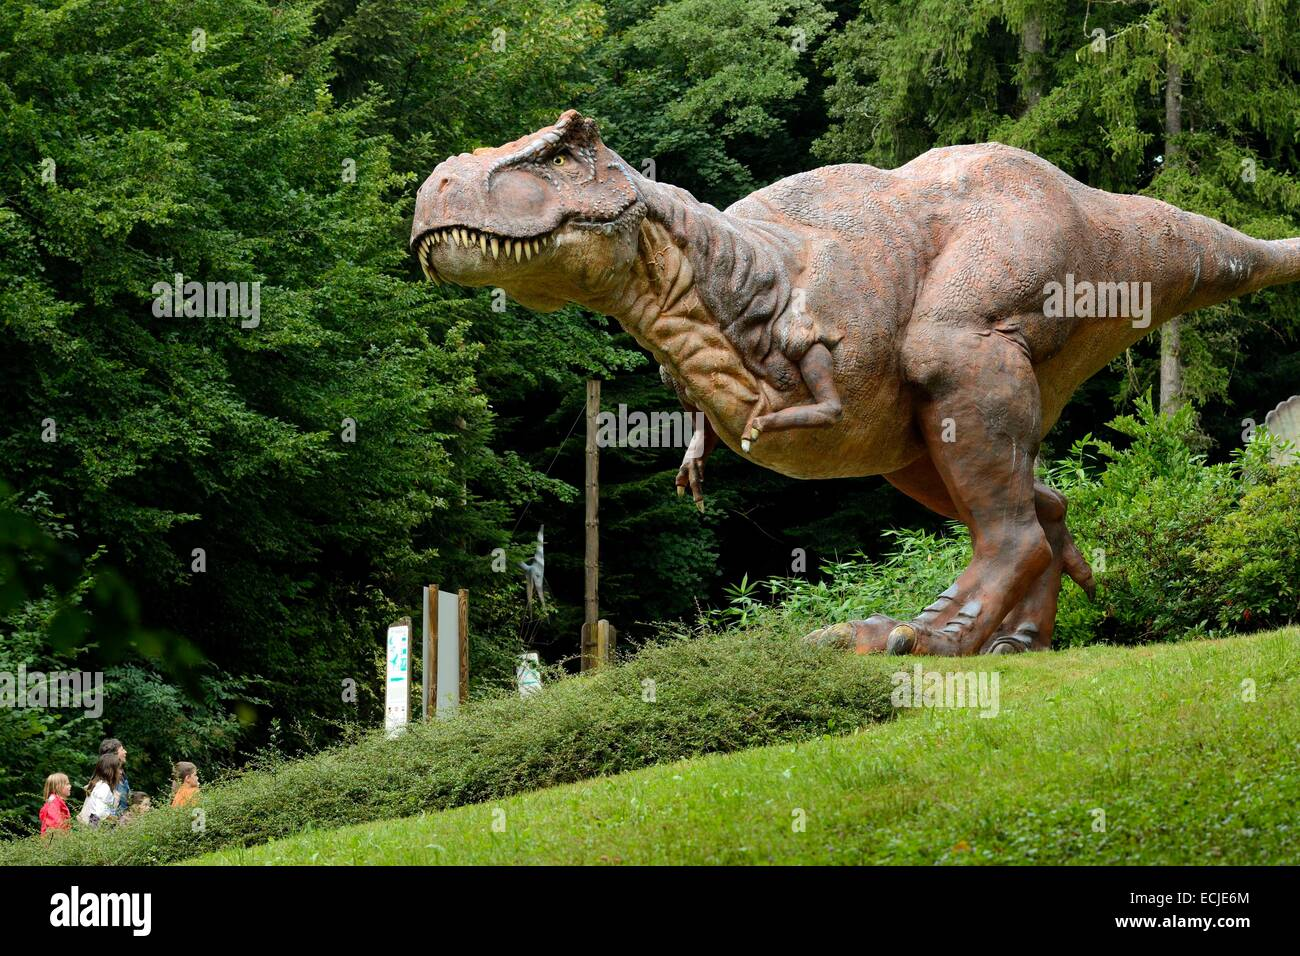 France, Doubs, Charbonnieres les Sapins, Dino Zoo prehistoric park, Tyrannosaurus rex - Stock Image